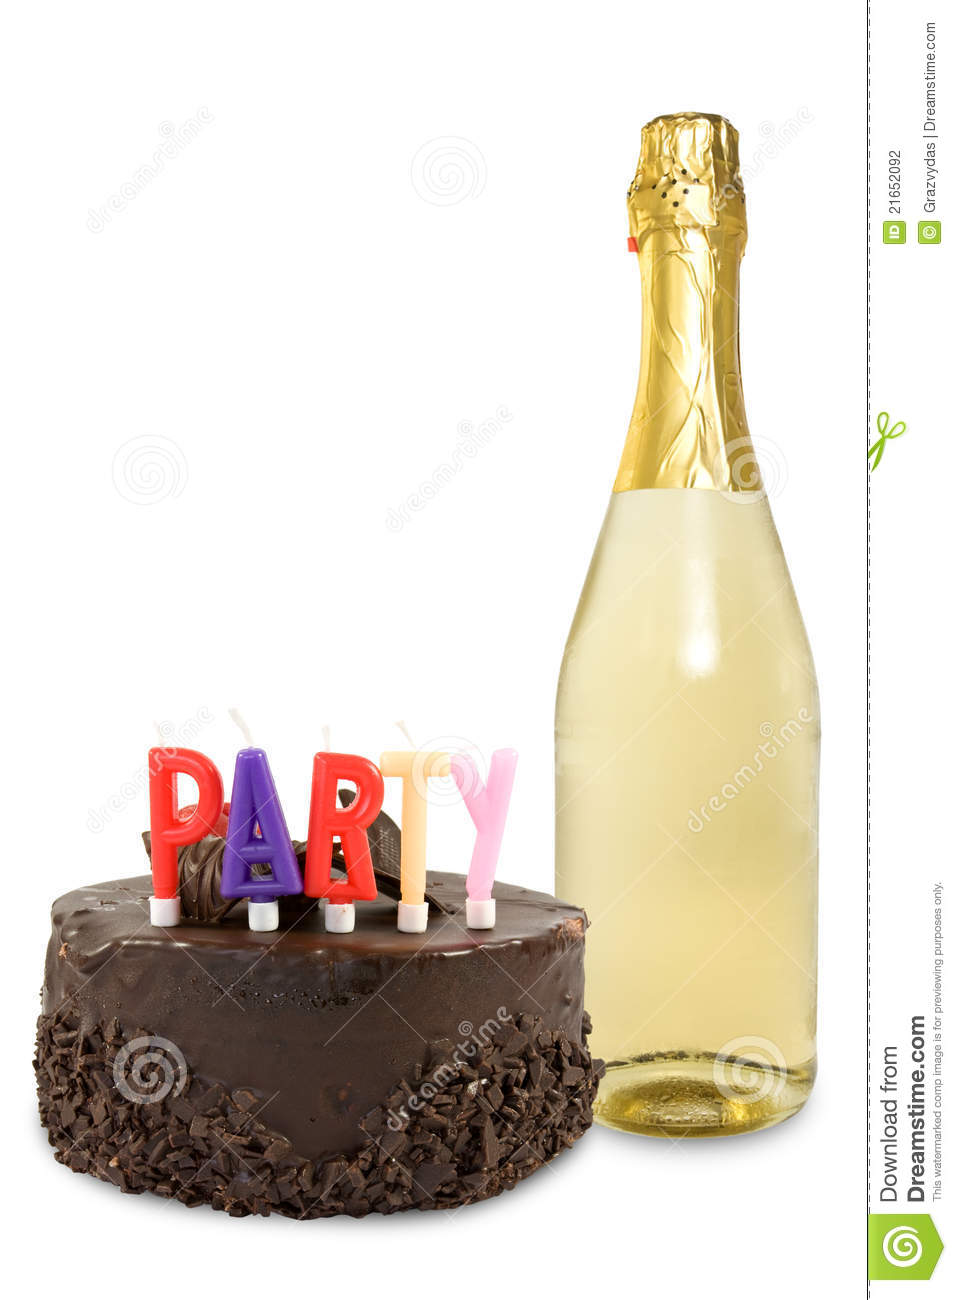 Birthday Cake And Champagne Bottle Over A White Background